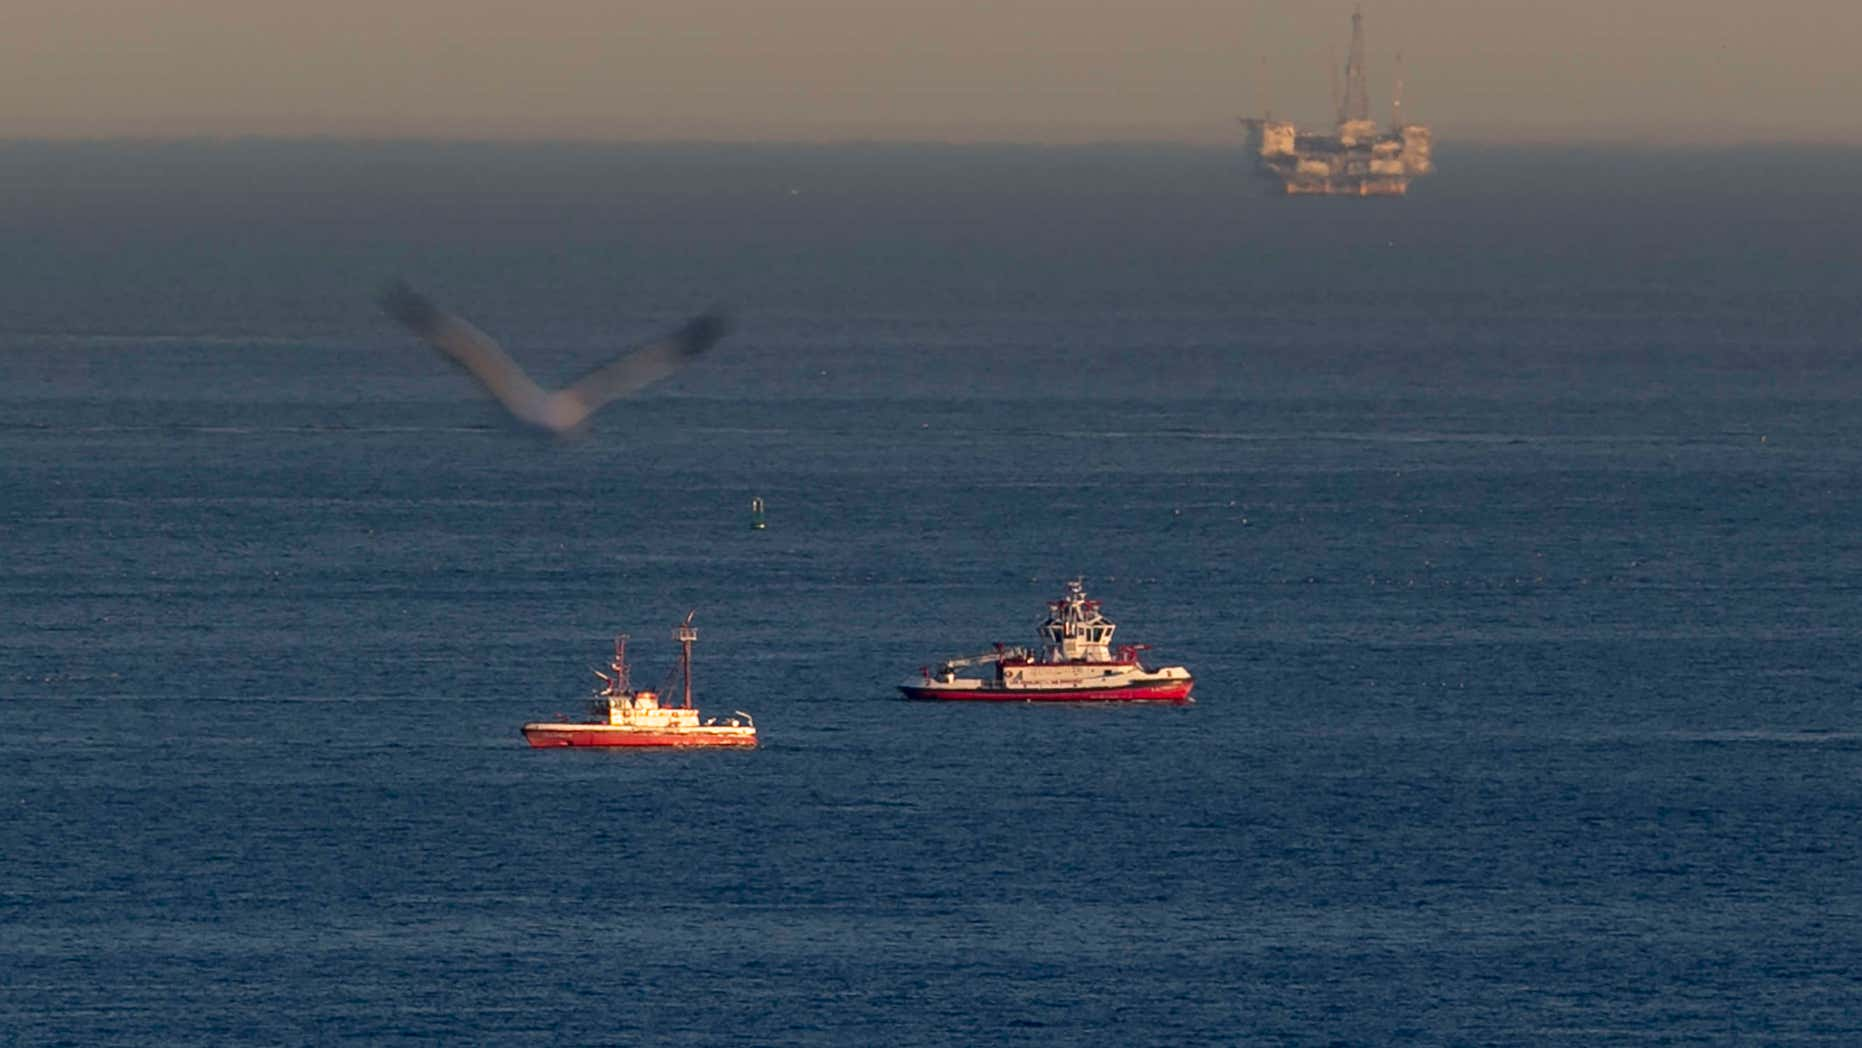 Feb. 5, 2016: Rescue boats search for wreckage from two small planes that collided in midair and plunged into the ocean off of Los Angeles harbor in San Pedro, Calif.